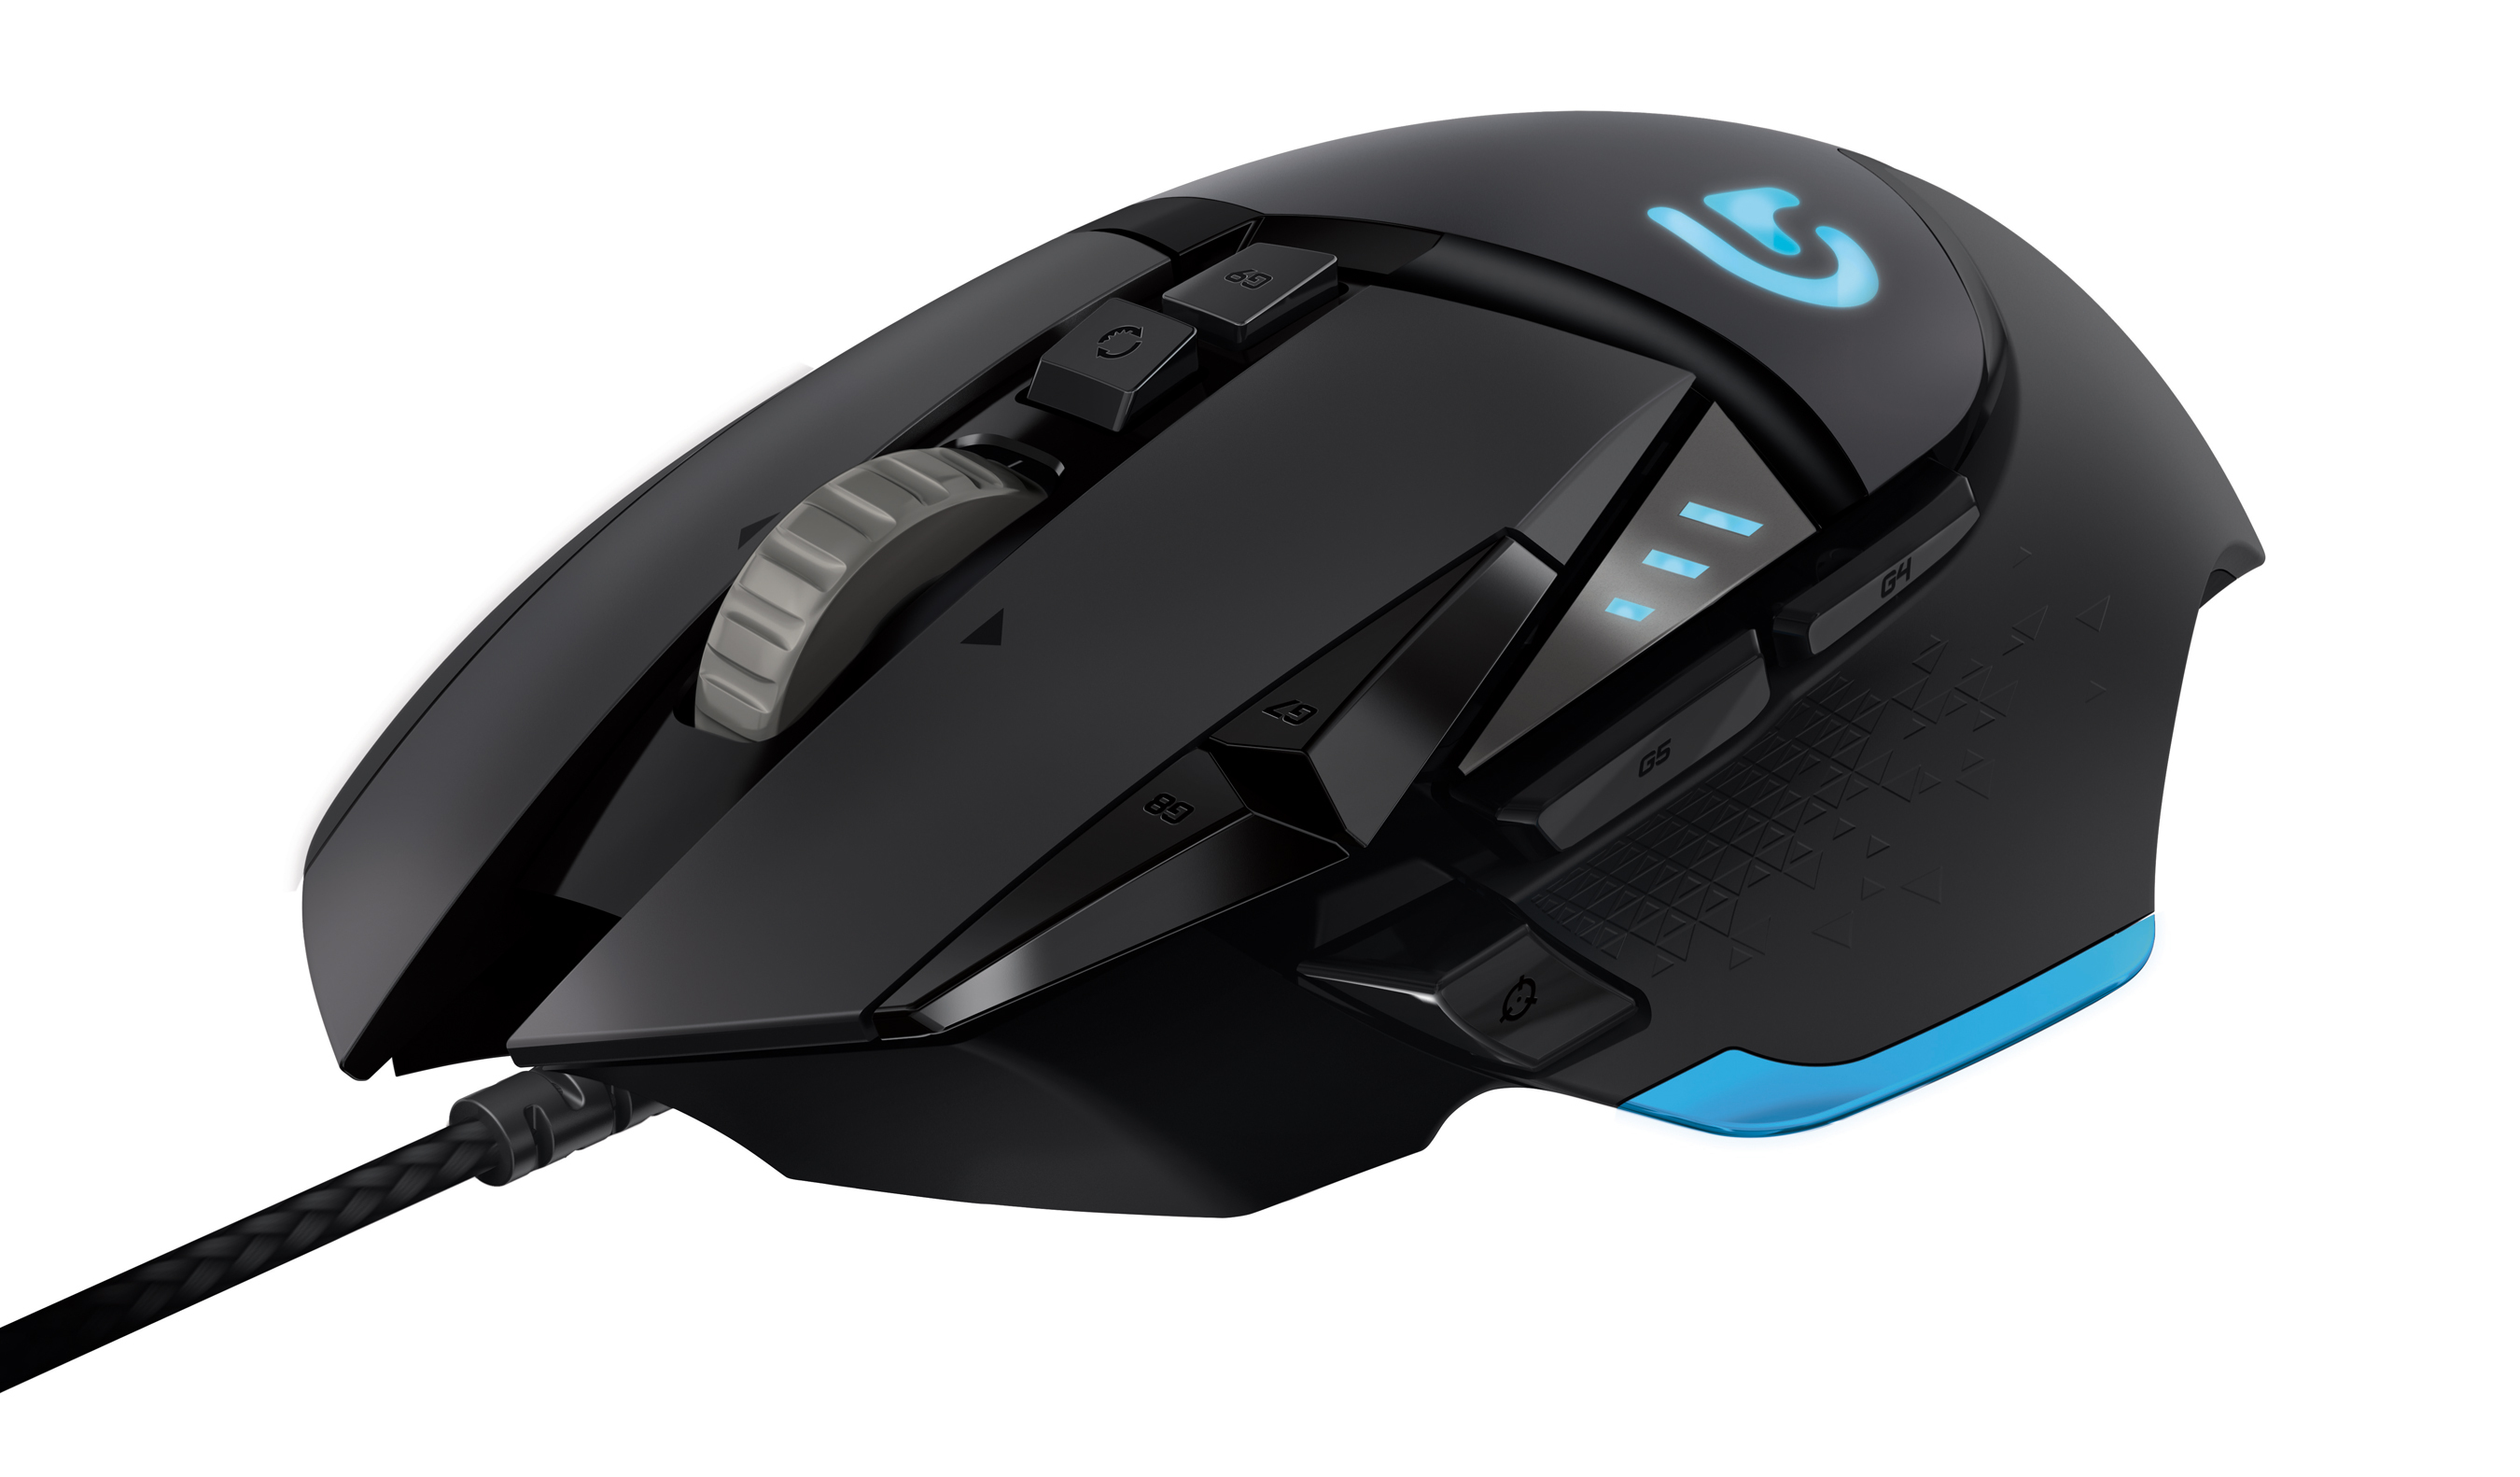 The Logitech G502 Proteus Core Tunable Gaming Mouse (Photo: Business Wire)